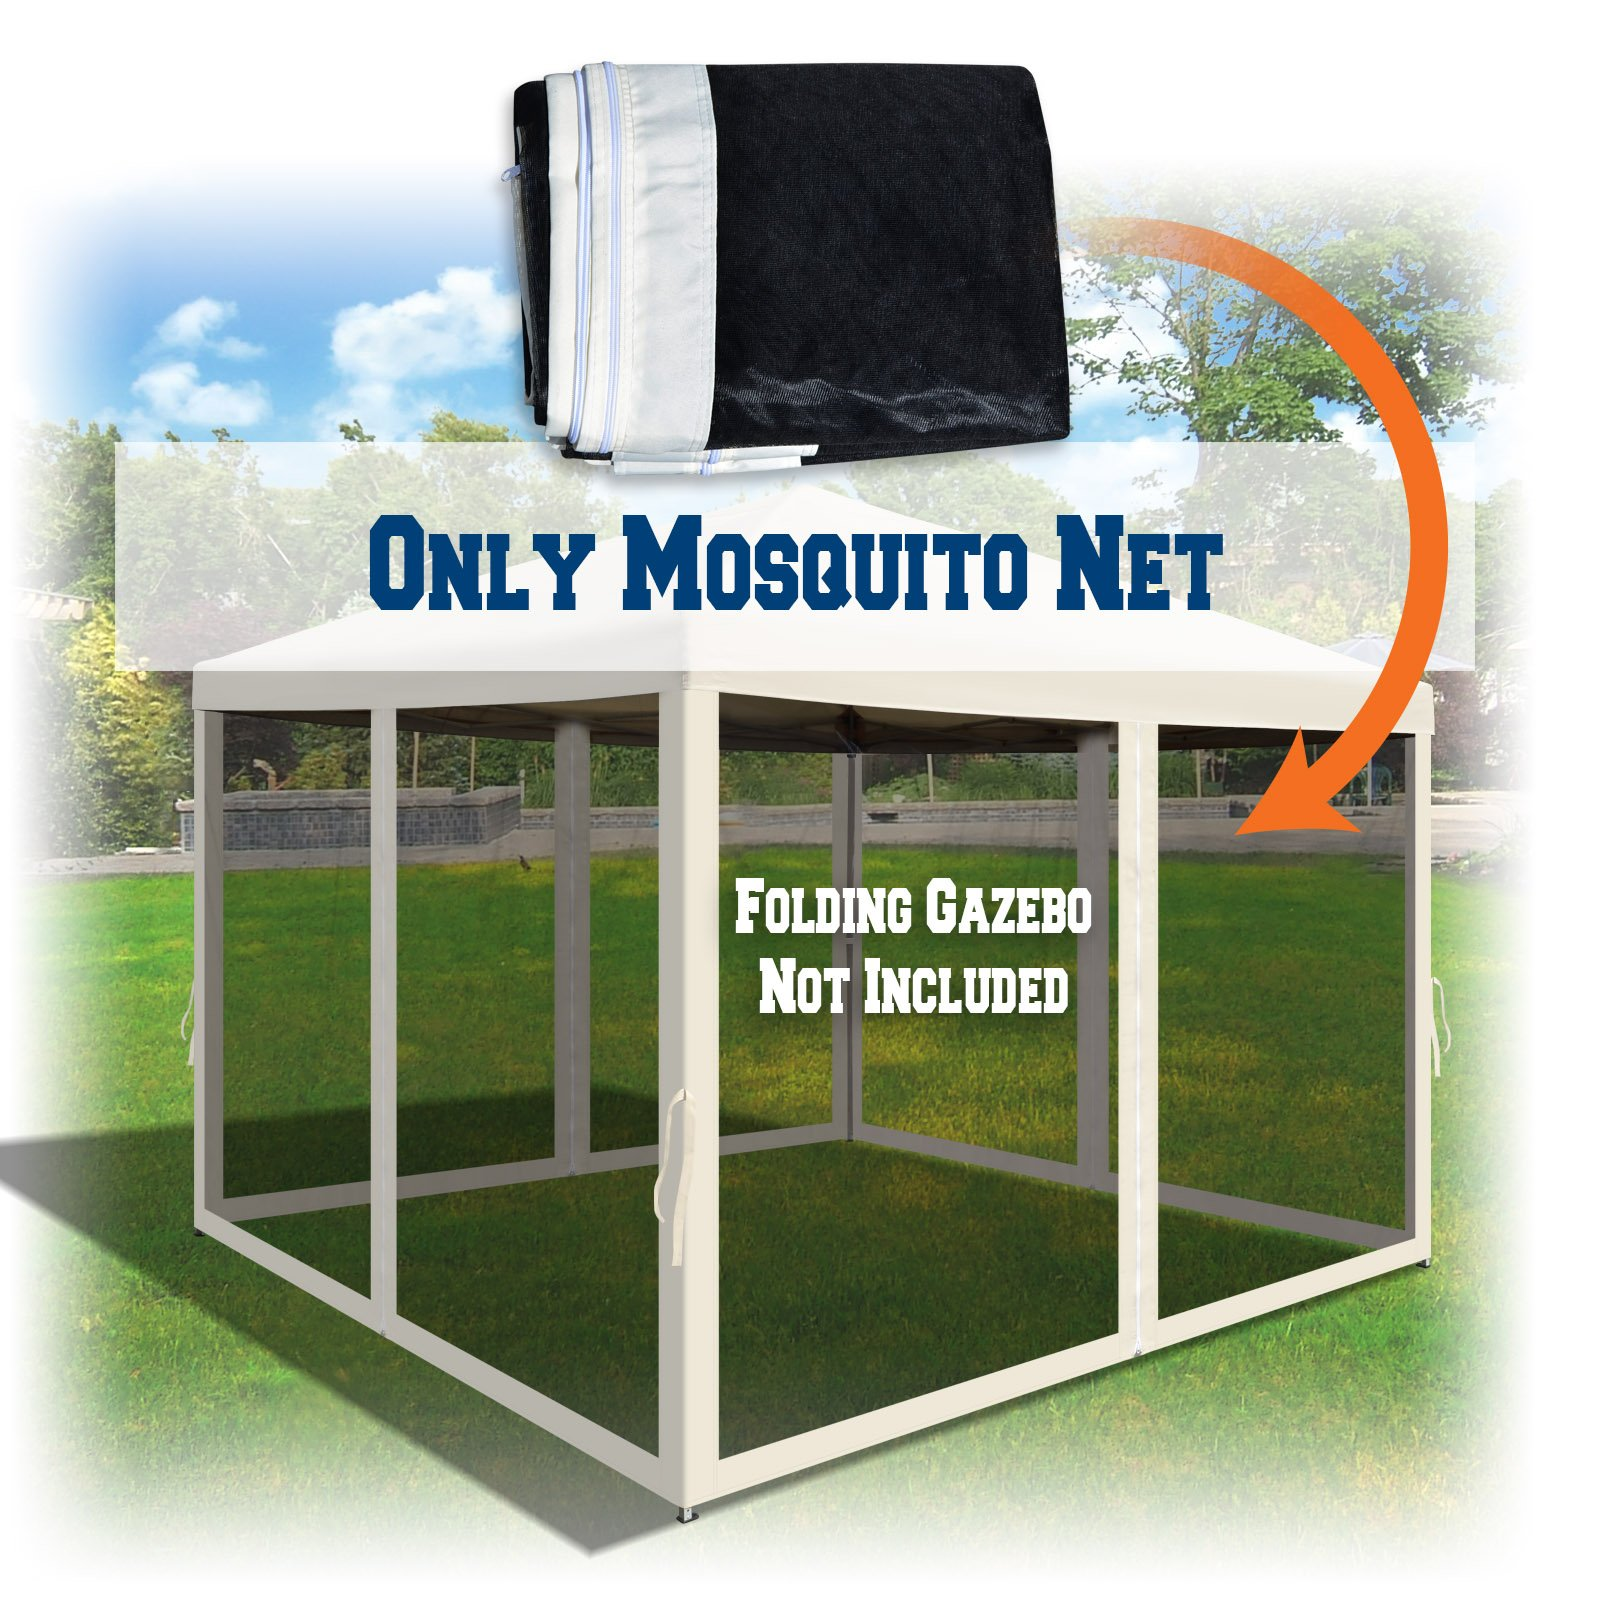 BenefitUSA Canopies 10' L X 6.4' W Mesh Wall Sidewalls for Pop Up Canopy Screen Room, Pack of 4 (Walls Only) (Ecru) by BenefitUSA